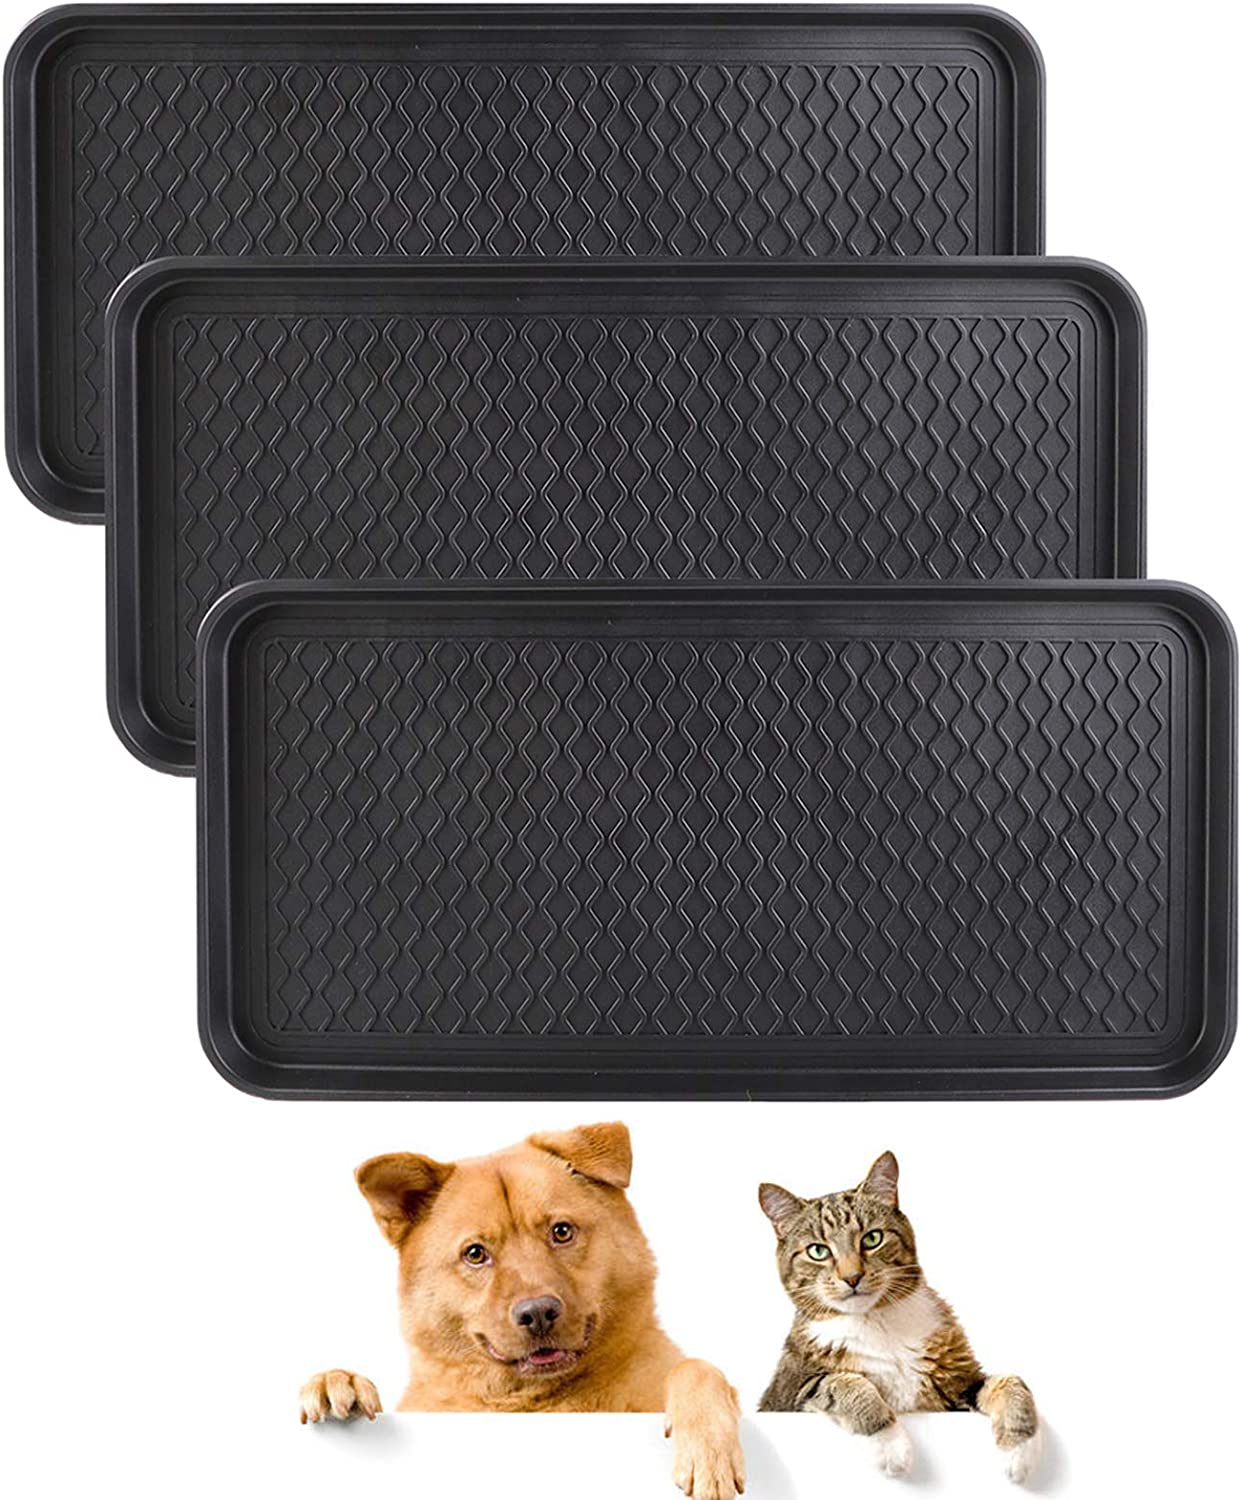 Falflor Pet Food Bowl Tray Multi-Purpose Pet Feeding Mat Non Slip Boot Mat and Tray Floor Protection Indoor Outdoor Multi-Purpose Boot Trays